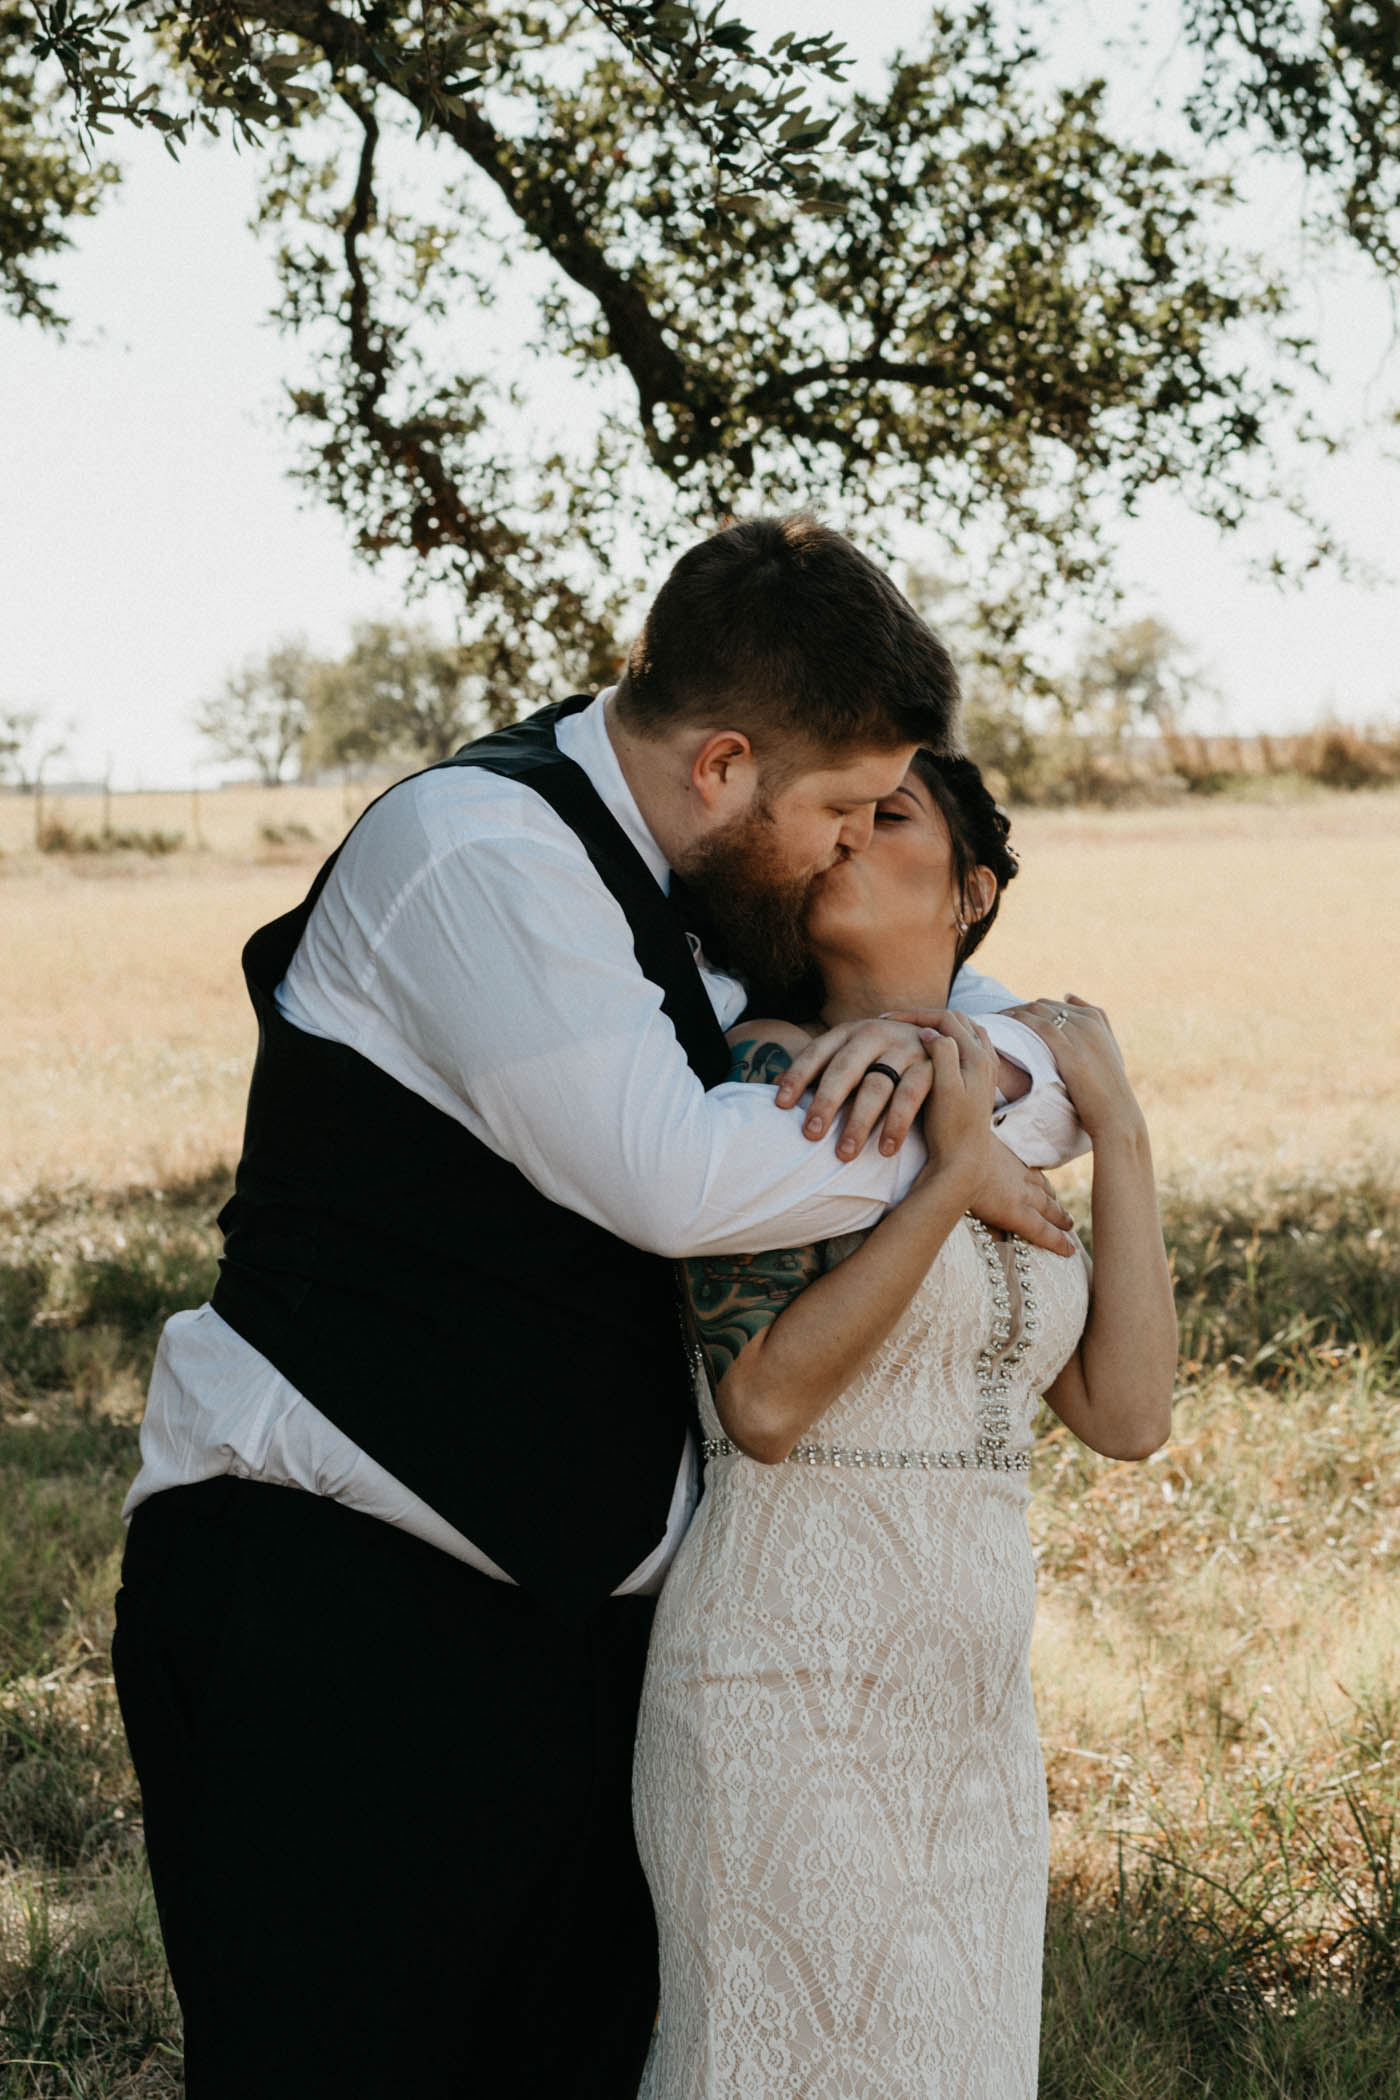 bride and groom kissing in a field in North Texas after their wedding ceremony